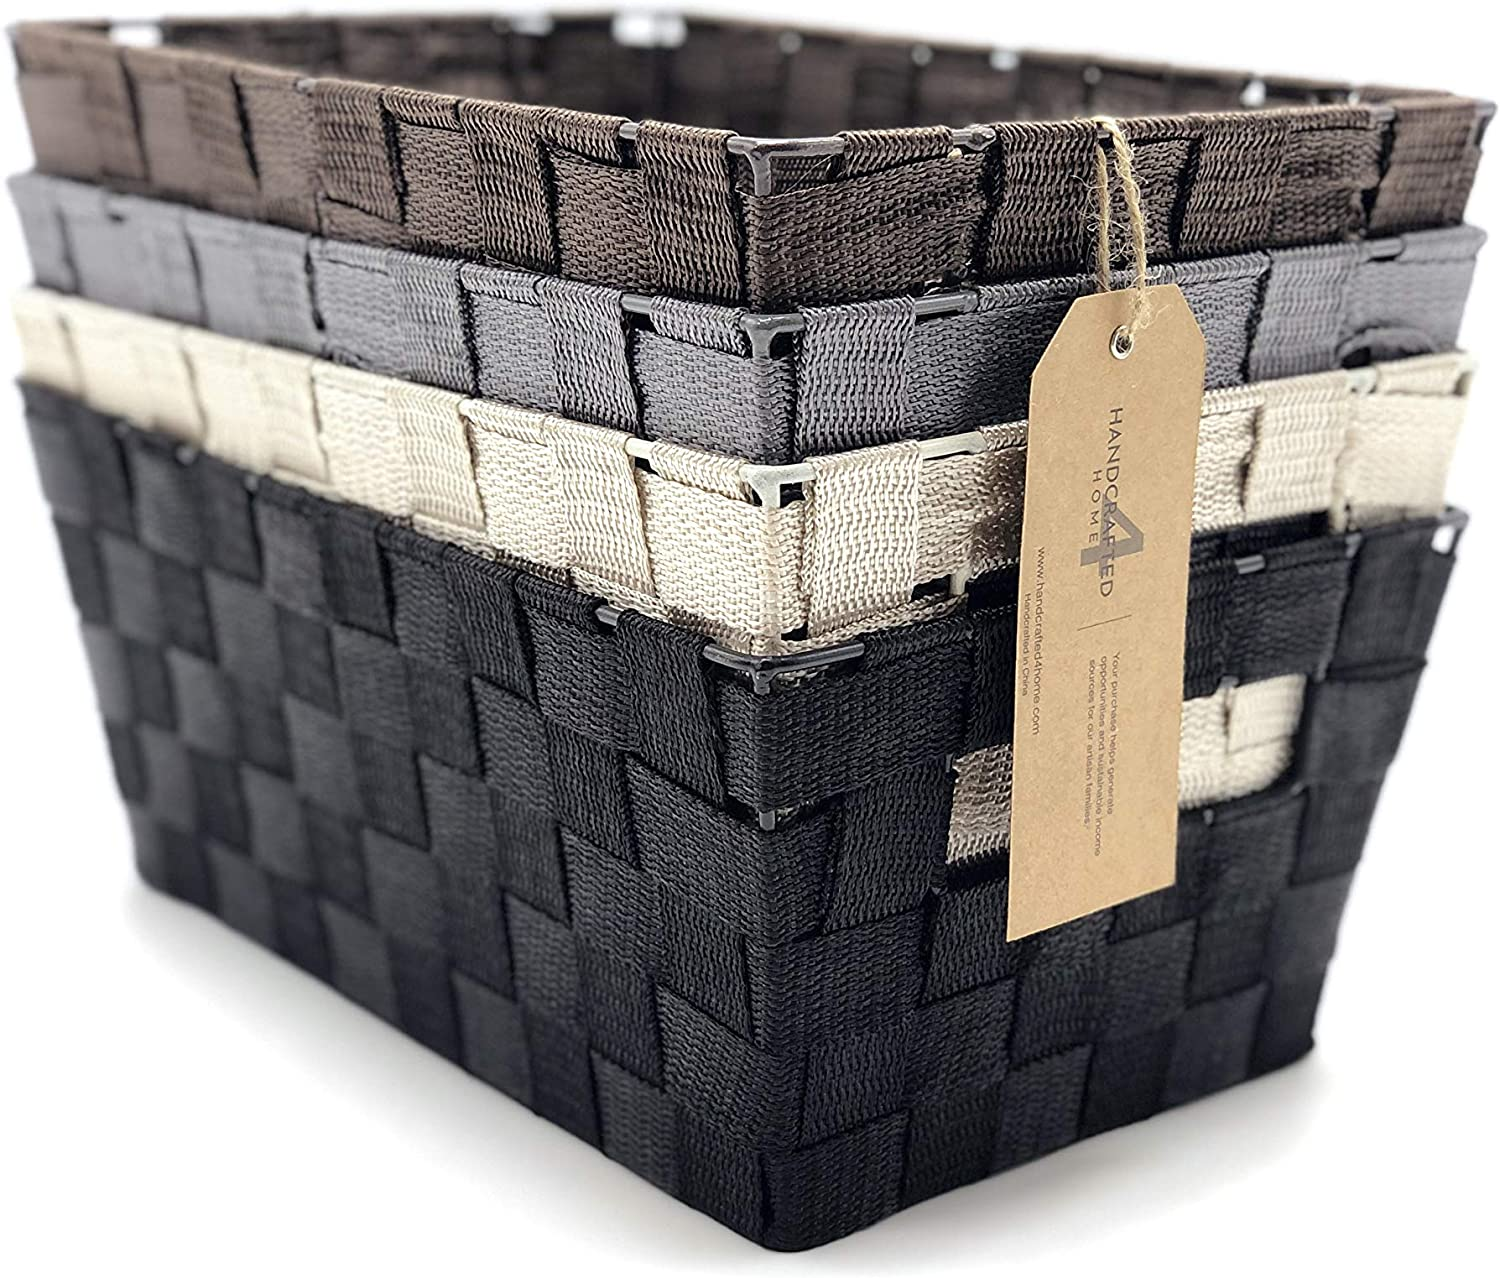 Handcrafted 4 Home GLNY4003 4-Pack Multi-Color Woven Strap Storage Baskets with Built-in Carry Handles for Shelves in Office, Bedroom, Living Room, Office